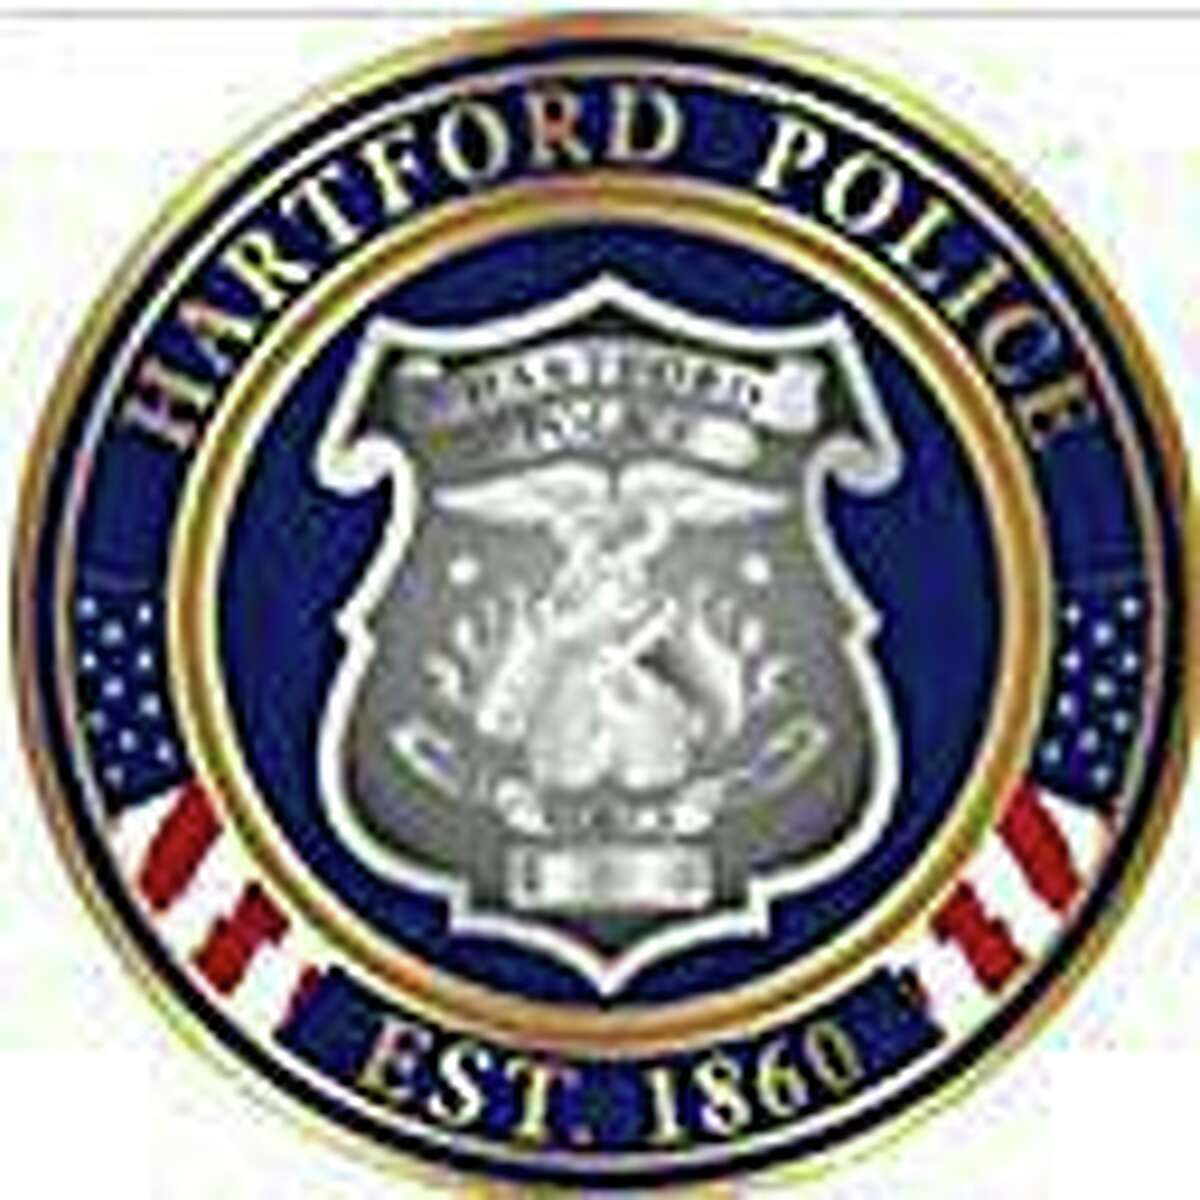 A 17-year-old was arrested twice in less than for hours for driving two different stolen vehicles, Hartford police said on Thursday, Nov. 19, 2020.